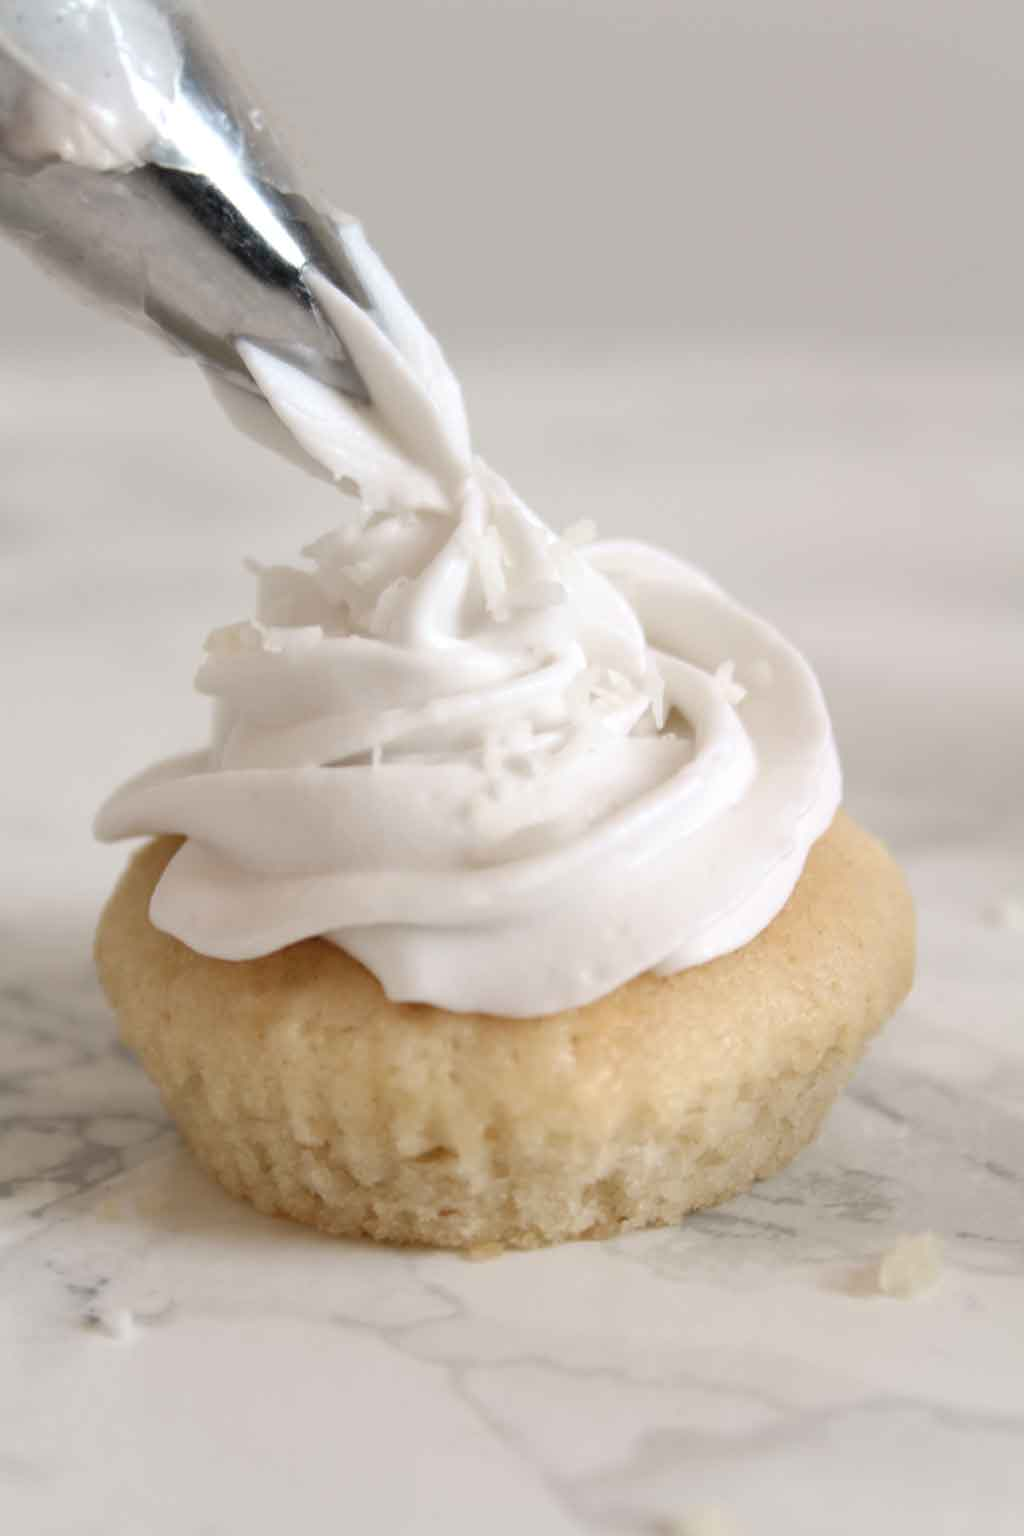 Piping vegan whipped Cream Onto A Cupcake